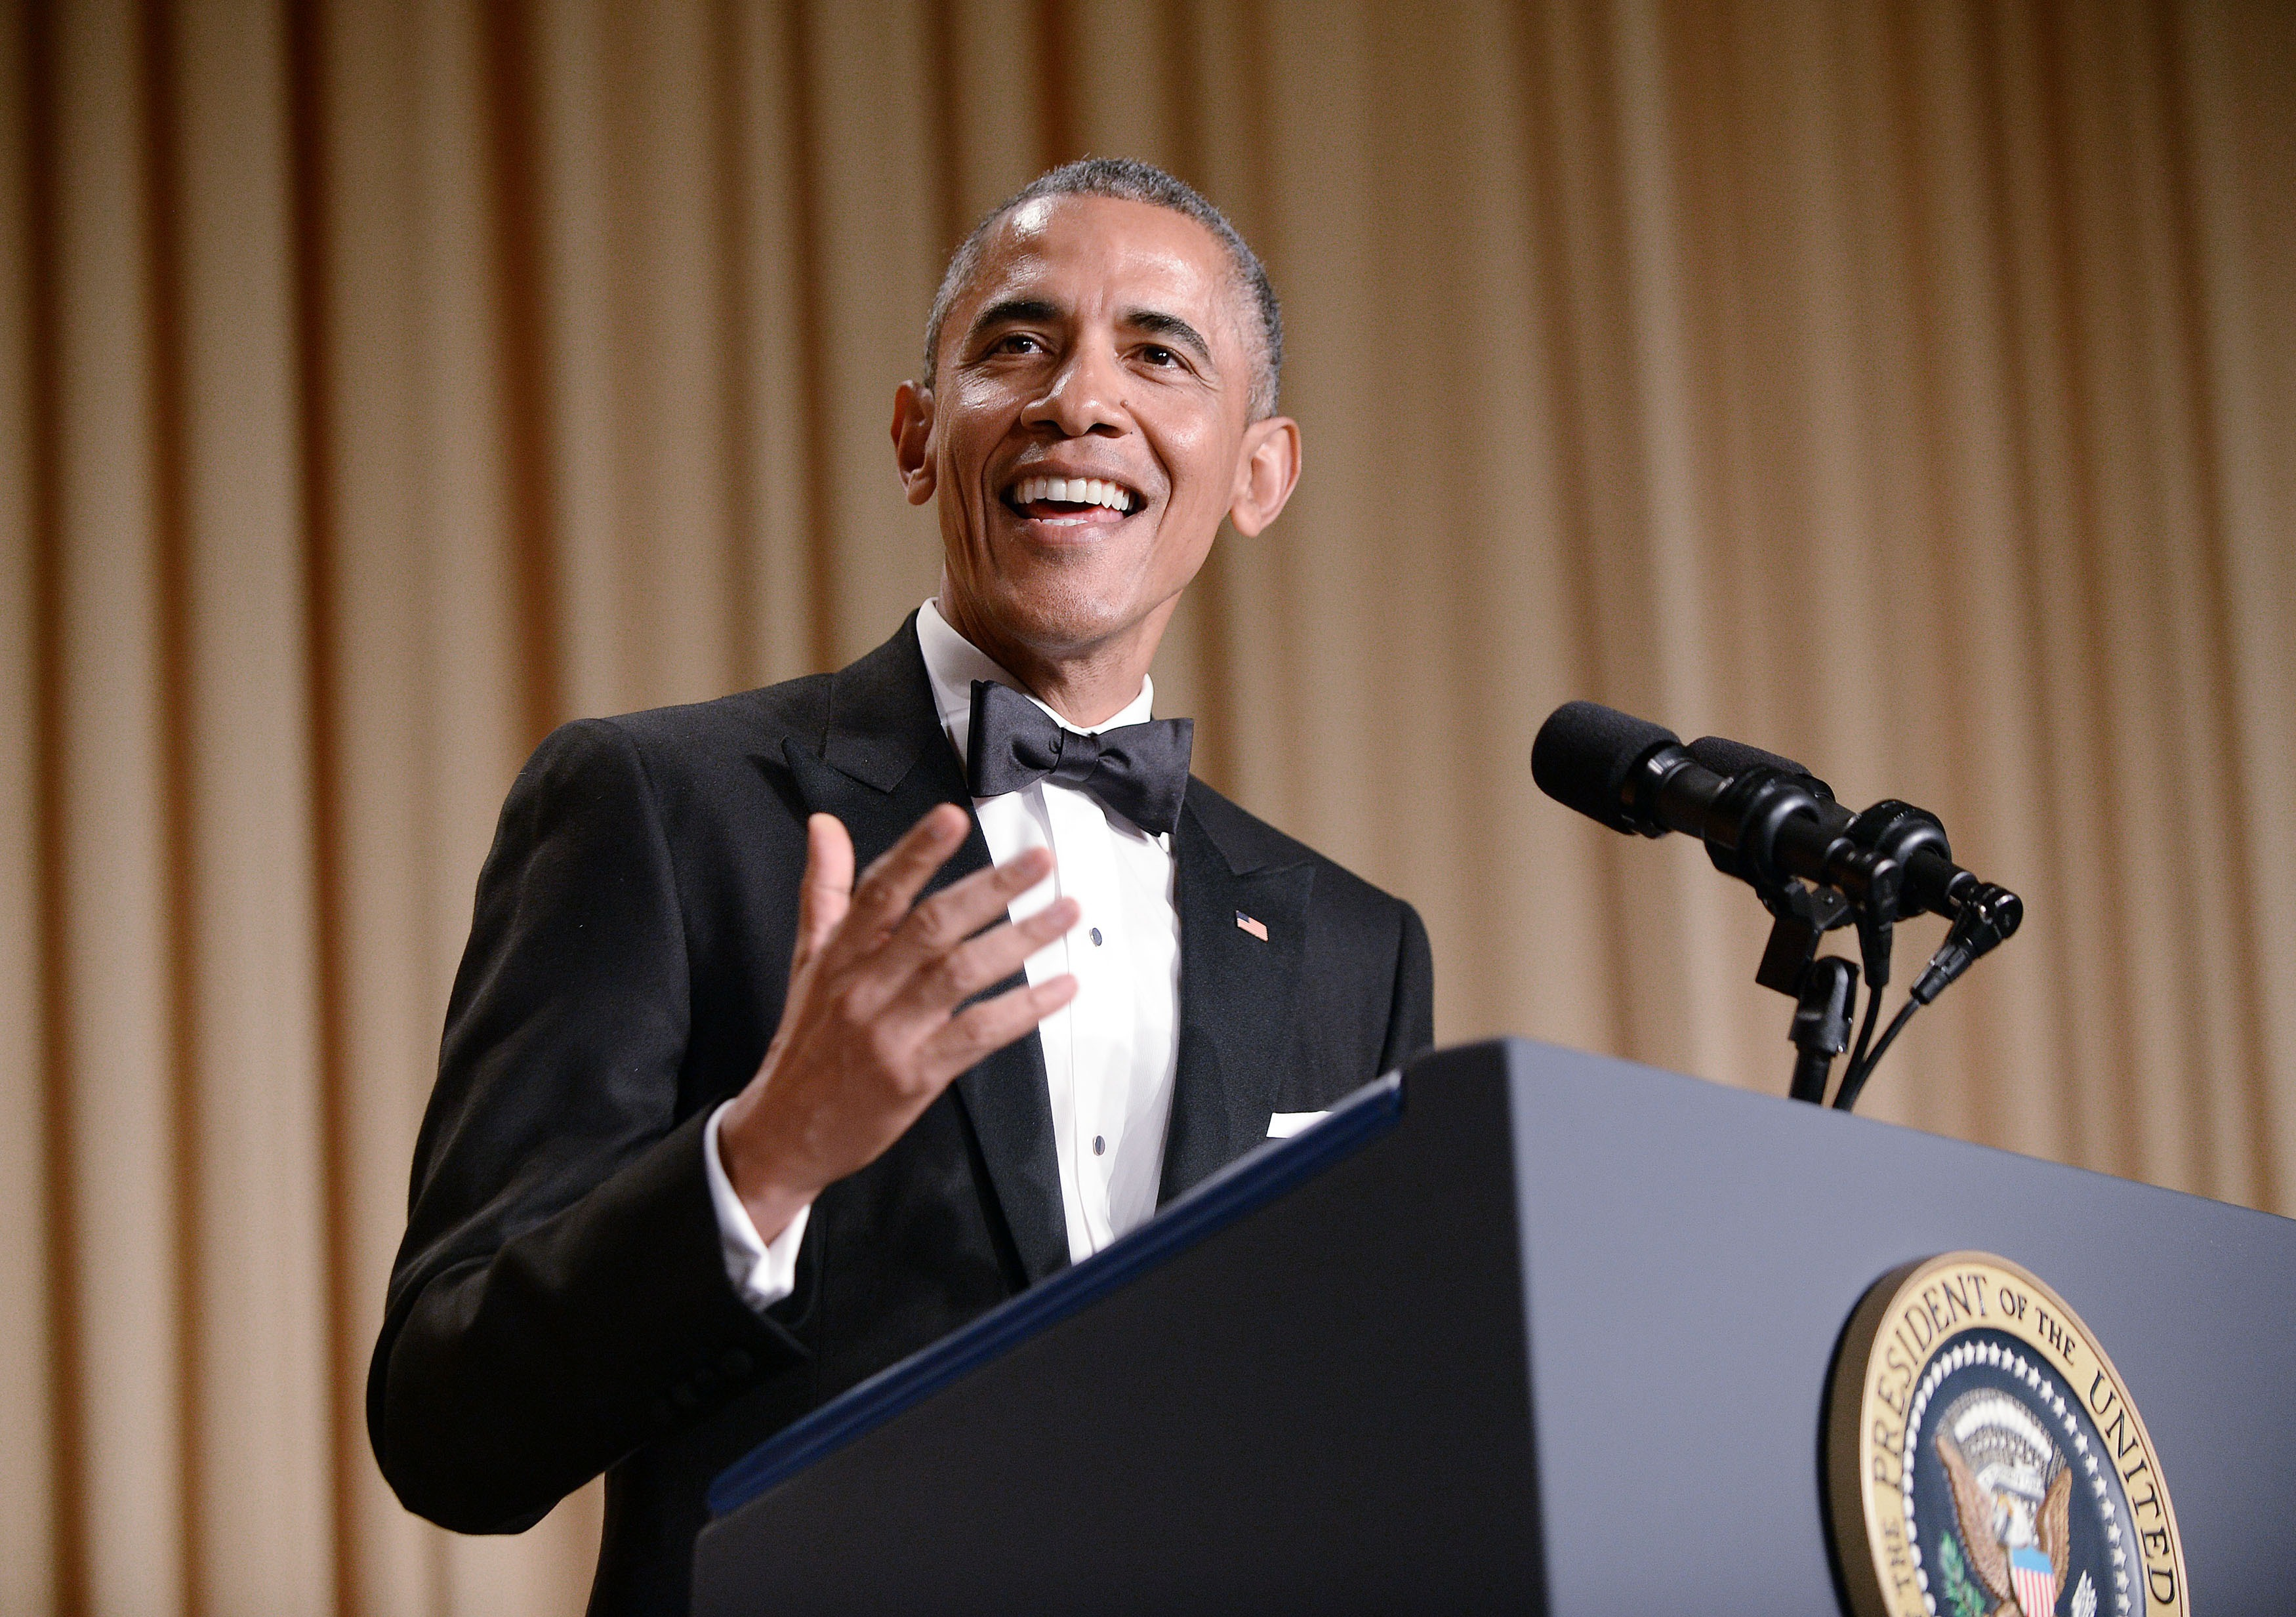 President Barack Obama speaks at the annual White House Correspondent's Association Gala at the Washington Hilton hotel April 25, 2015 in Washington, D.C. The dinner is an annual event attended by journalists, politicians and celebrities. Photo by Olivier Douliery-Pool/Getty Images.